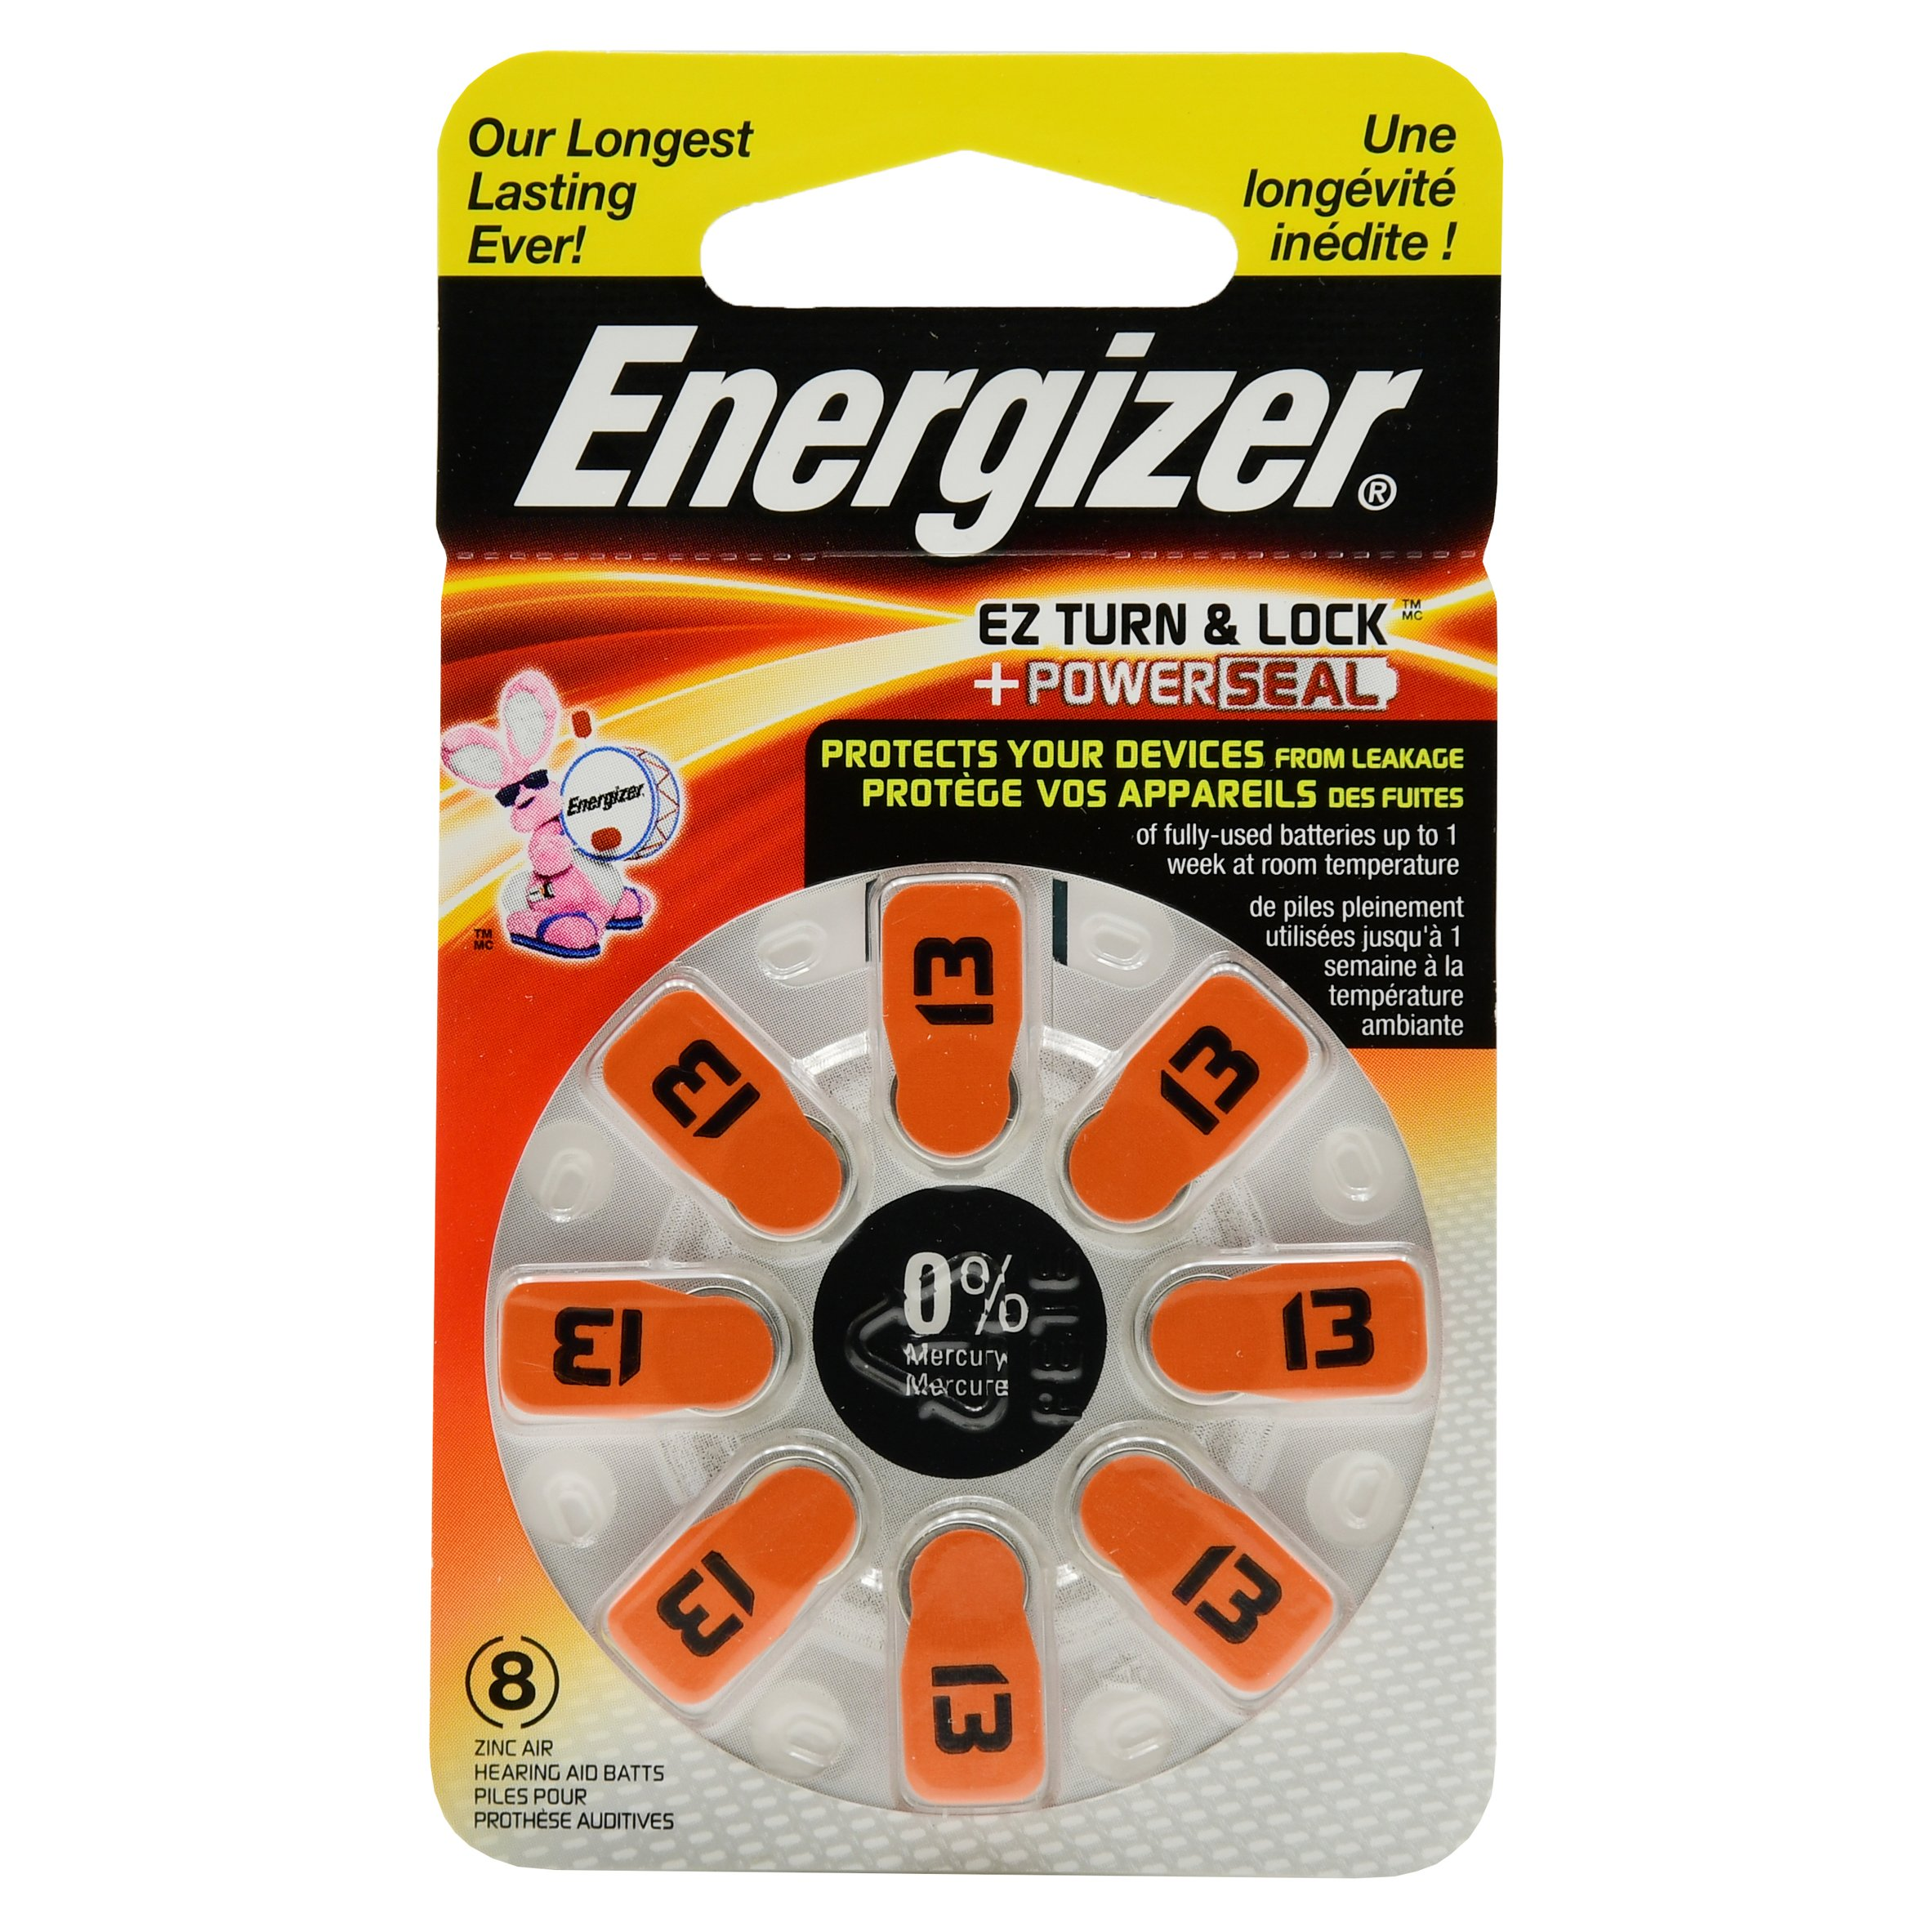 Energizer EZ Turn & Lock + Power Seal Zinc Air Hearing Aid Batteries, 1.4V, Mercury-free, Size 13, Pack of 8